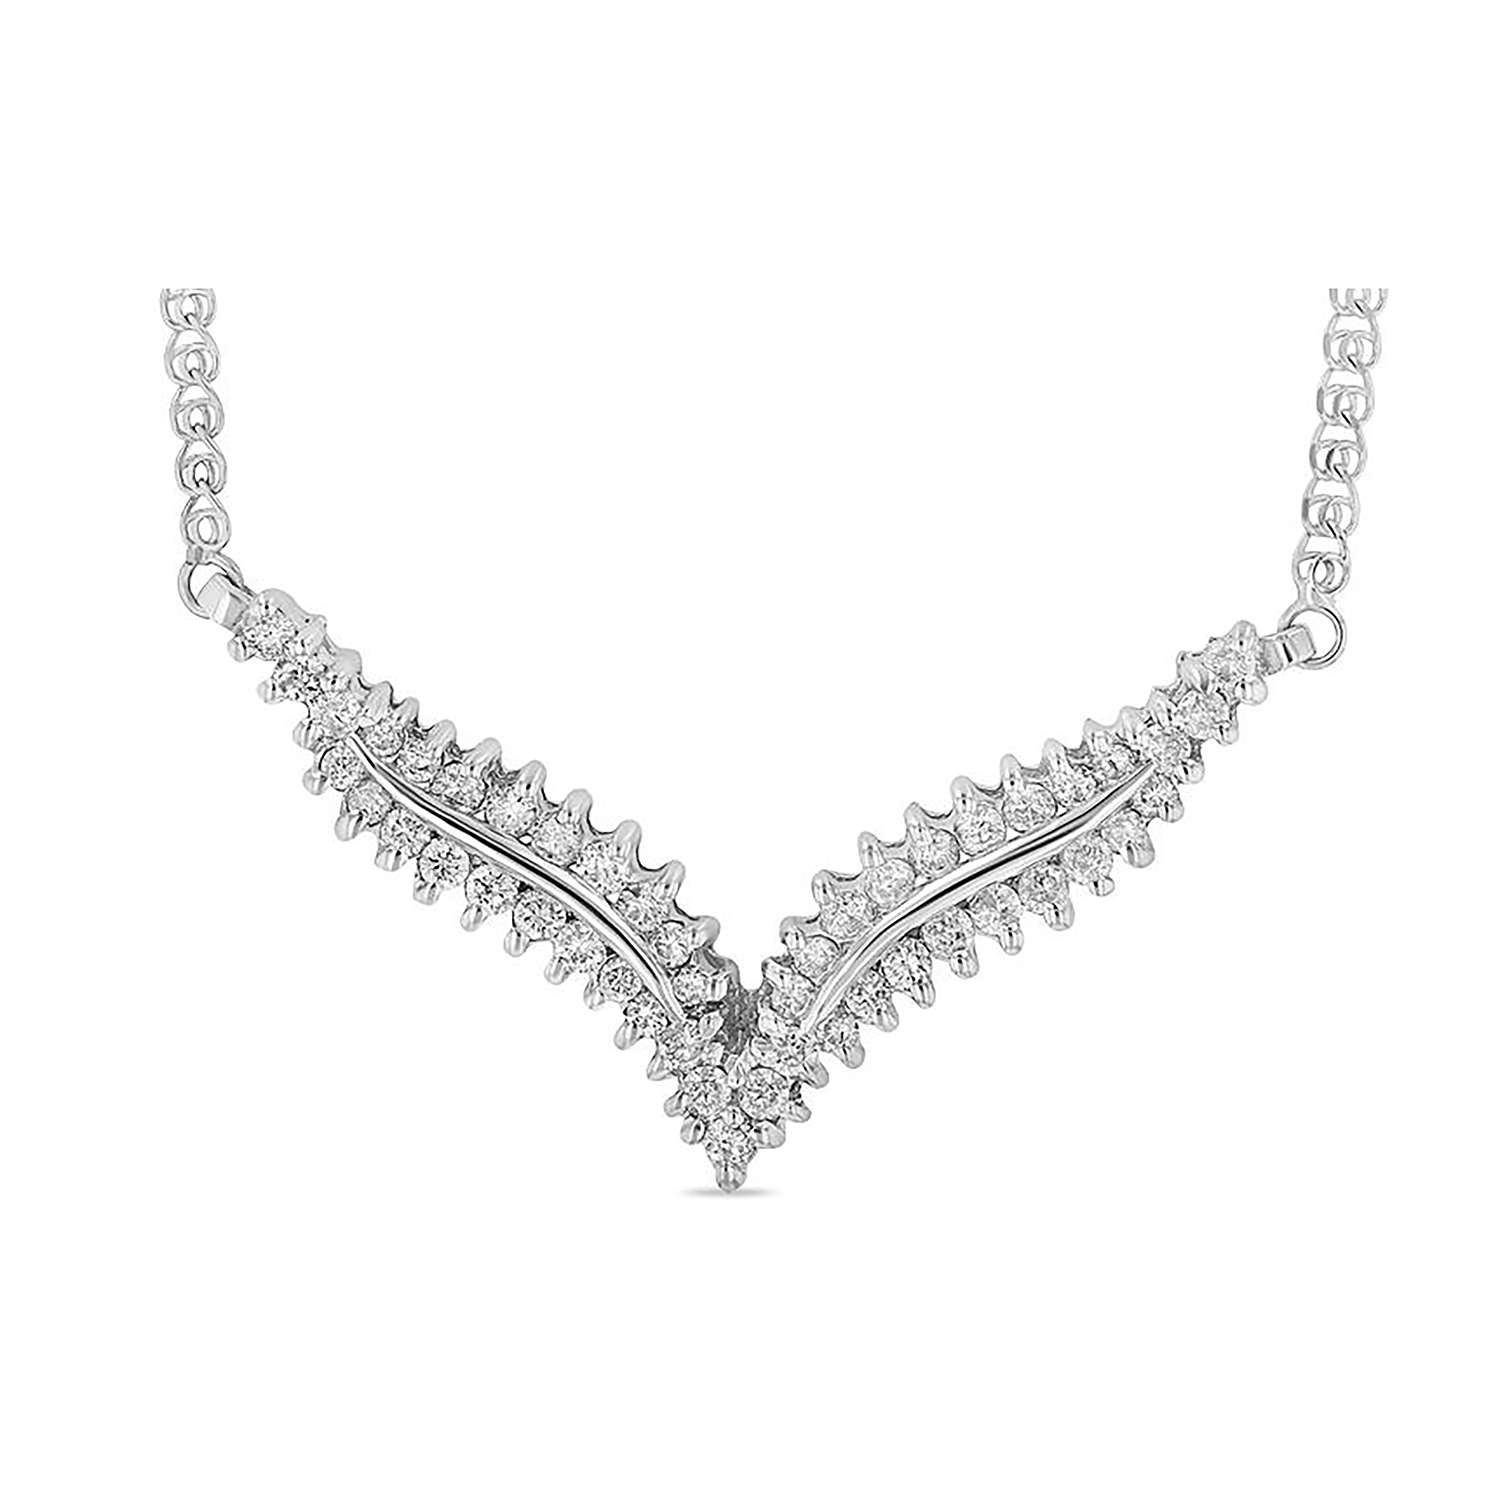 View 1.00ctw Diamond Necklace in 14k Gold